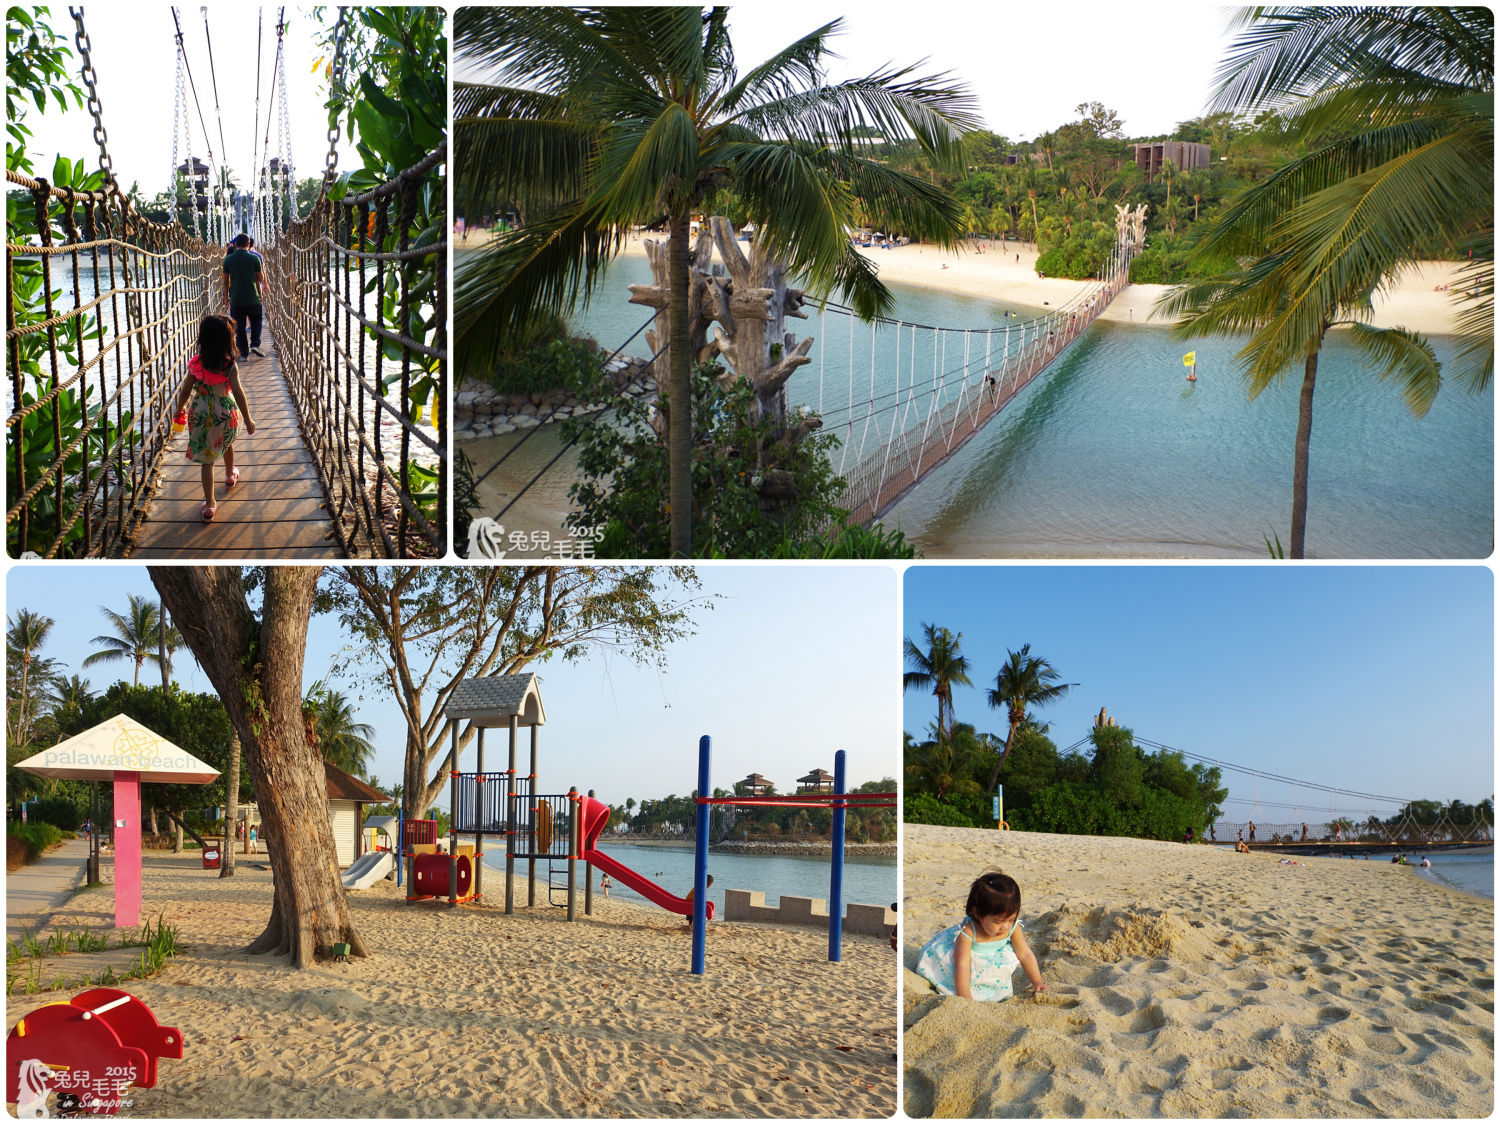 0215-palawan beach-13_Fotor_Collage